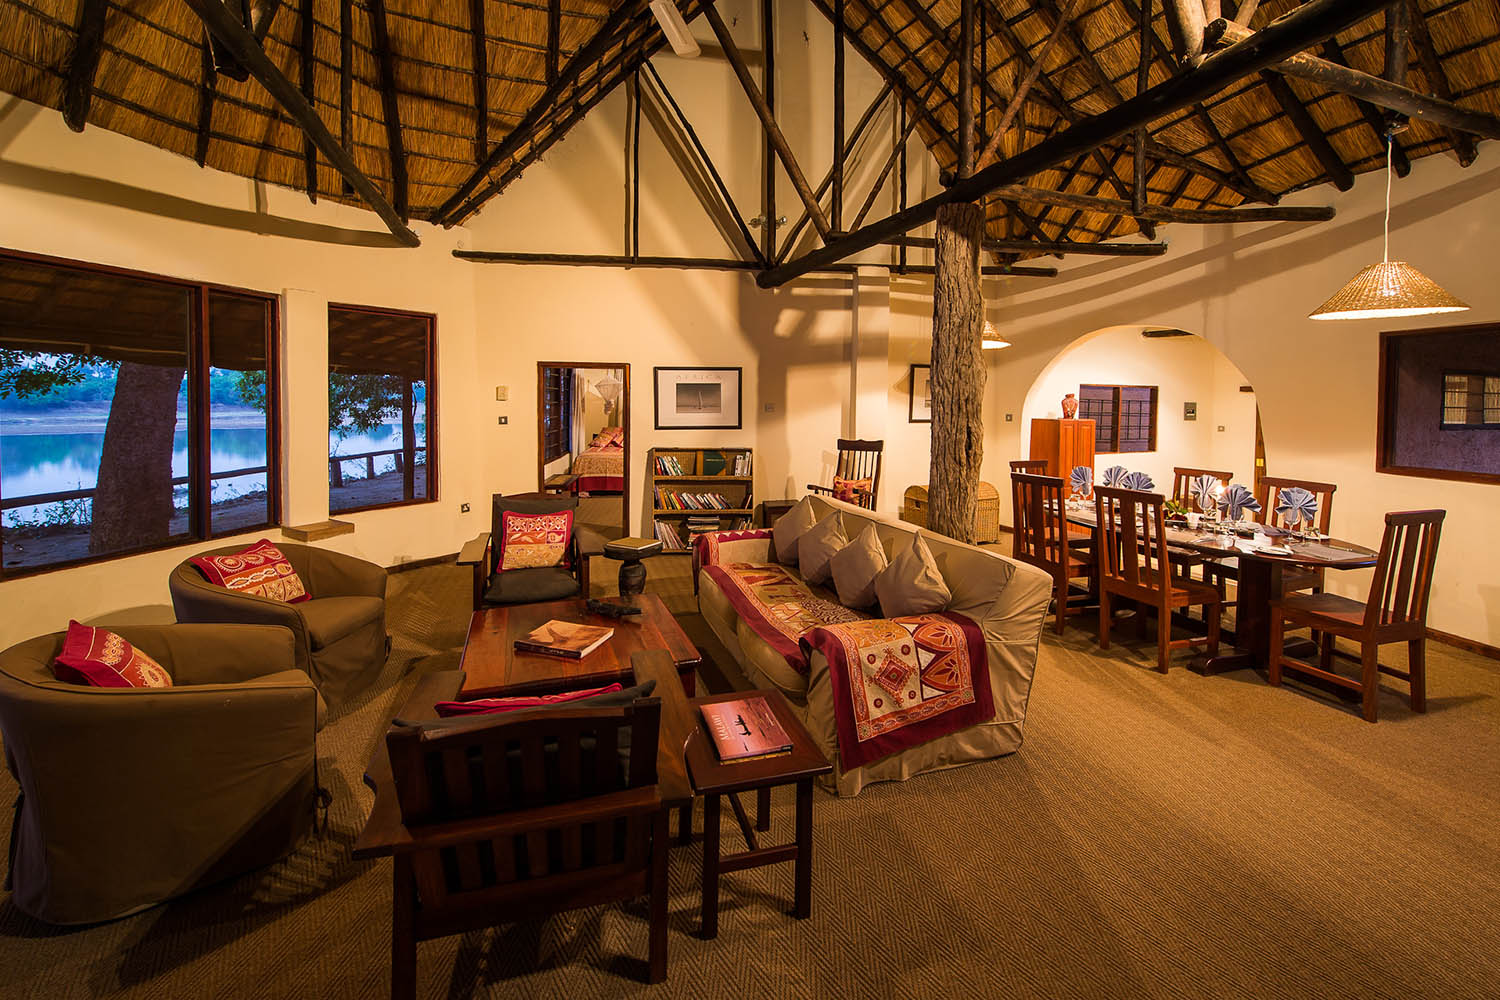 robins house lodge-zambia-in-style-tours-safari-packages-lodges-south-luangwa-national-park-lounge-dining-room